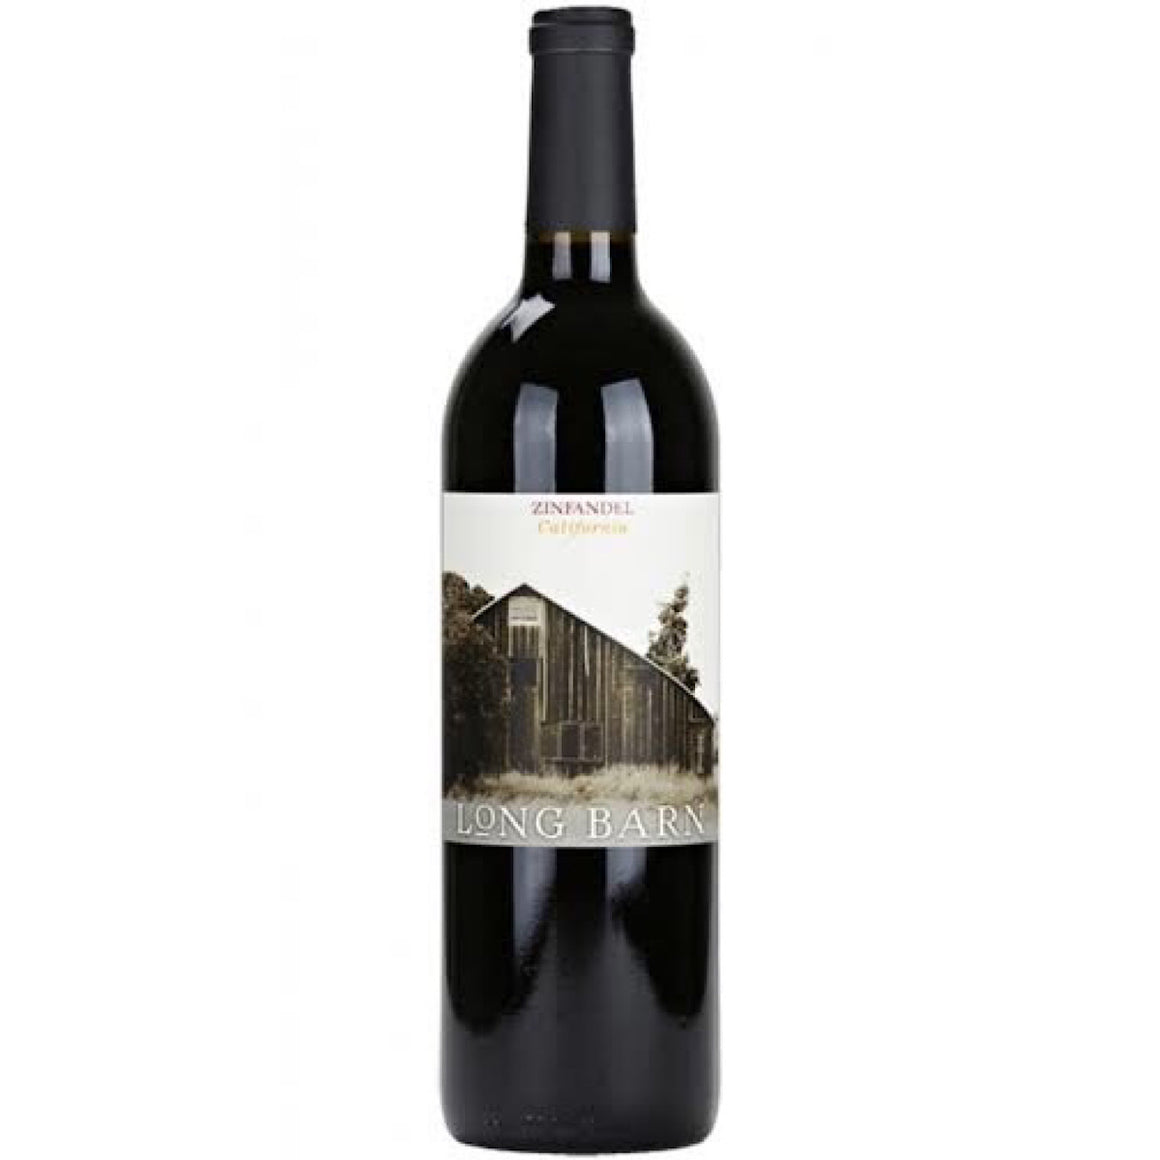 Long Barn Zinfandel 6 Bottle Case 75cl